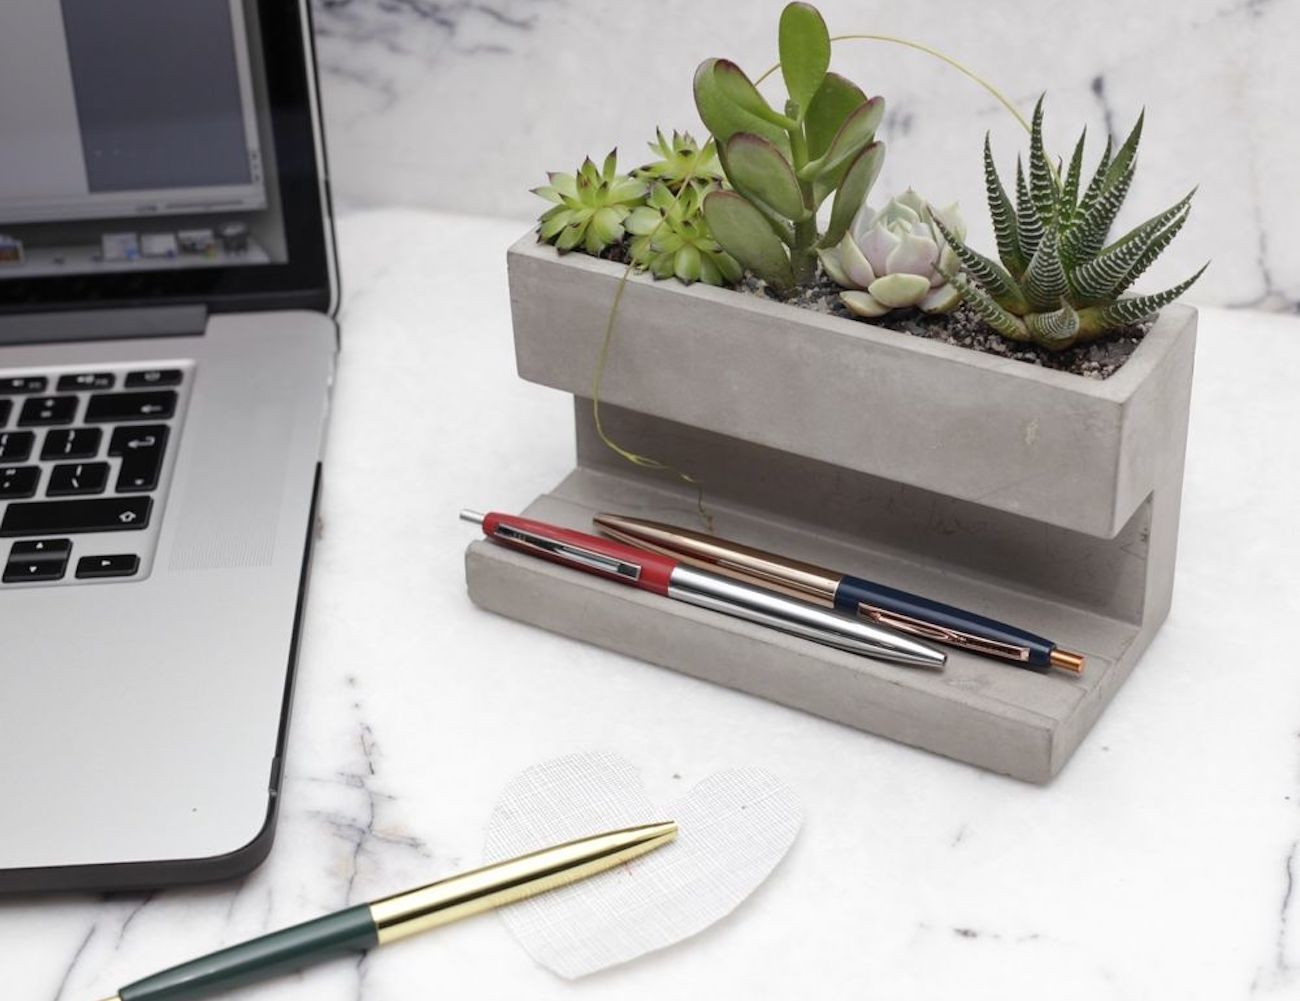 Amazing 5 Stylish Office Supplies To Keep You Organized